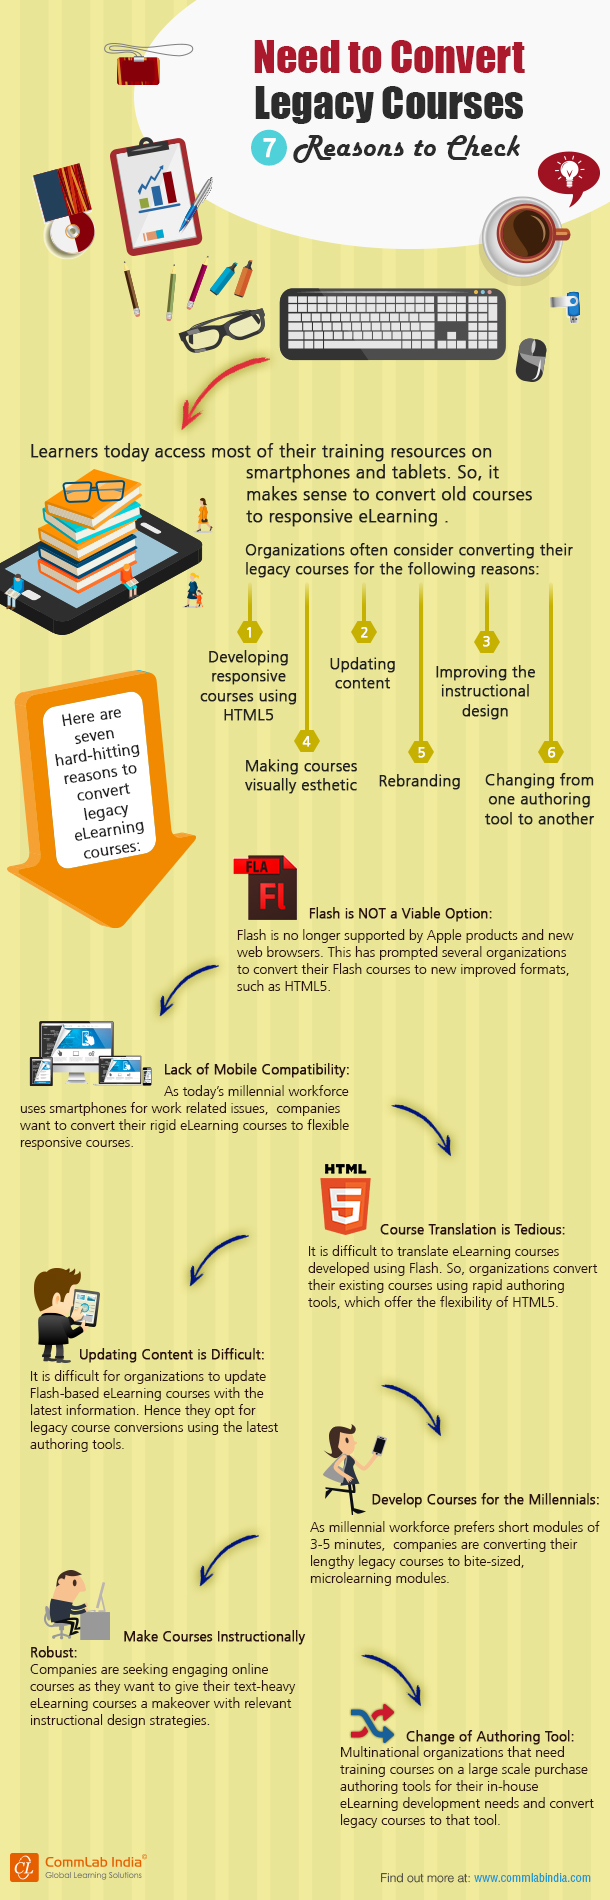 Need to Convert Legacy Courses 7 Reasons to Check [Infographic]